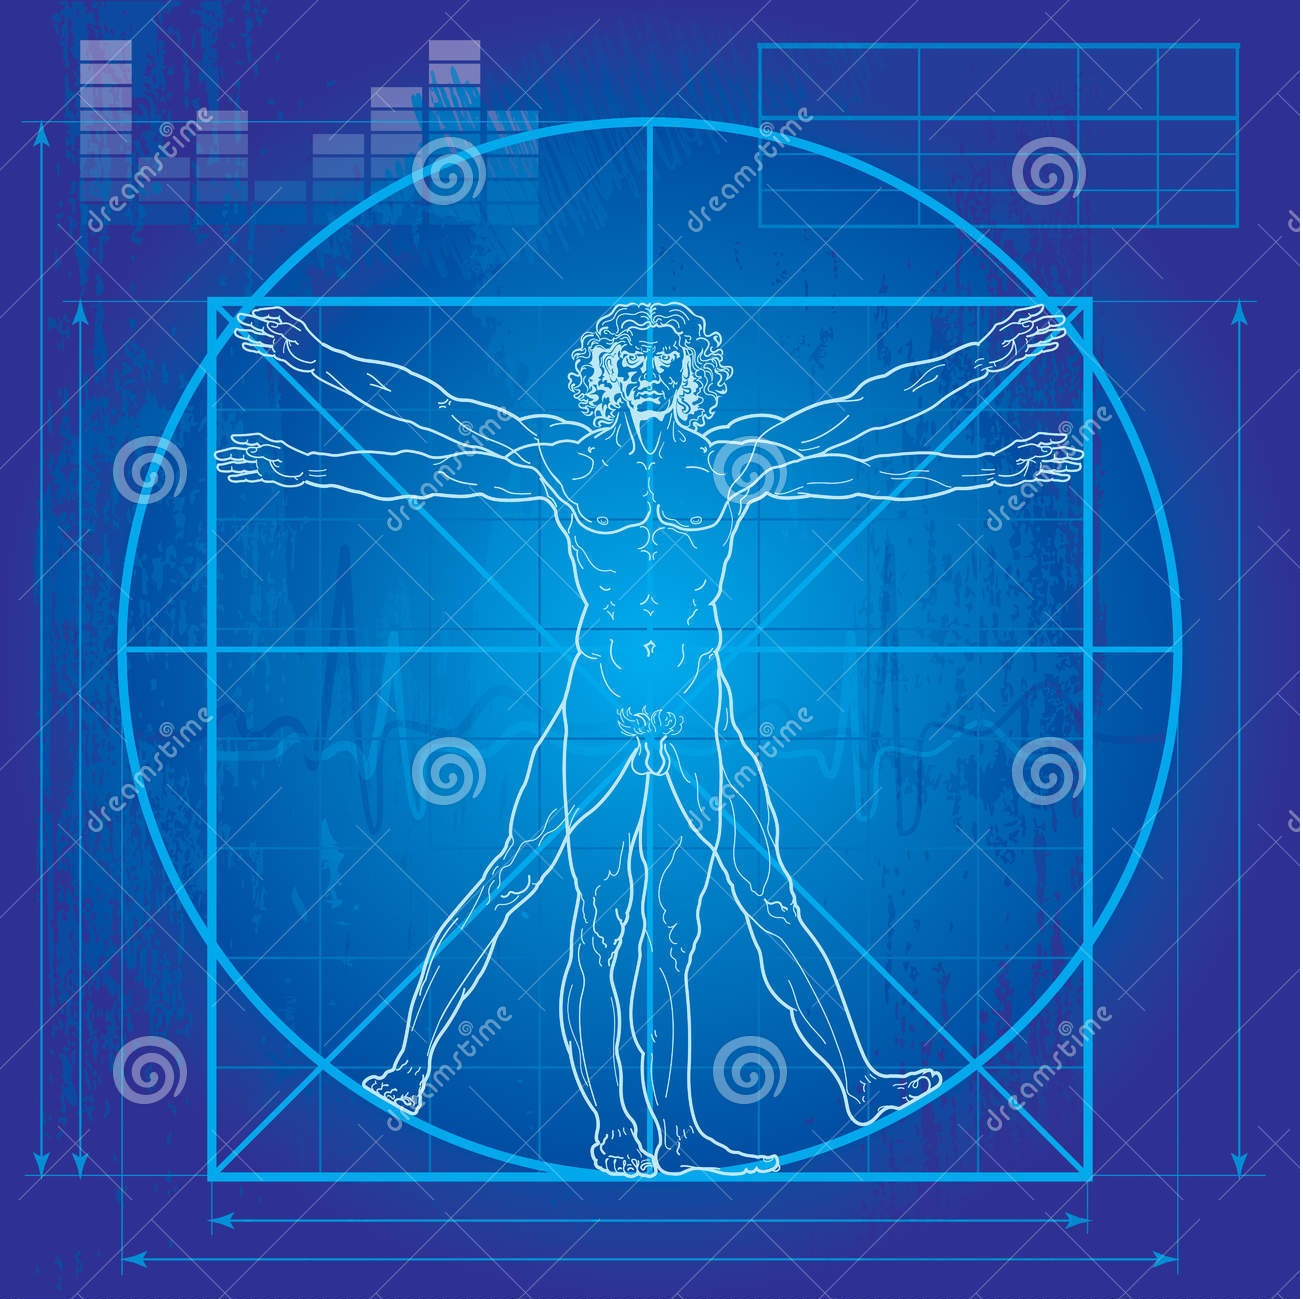 vitruvian man blueprint version 16533982